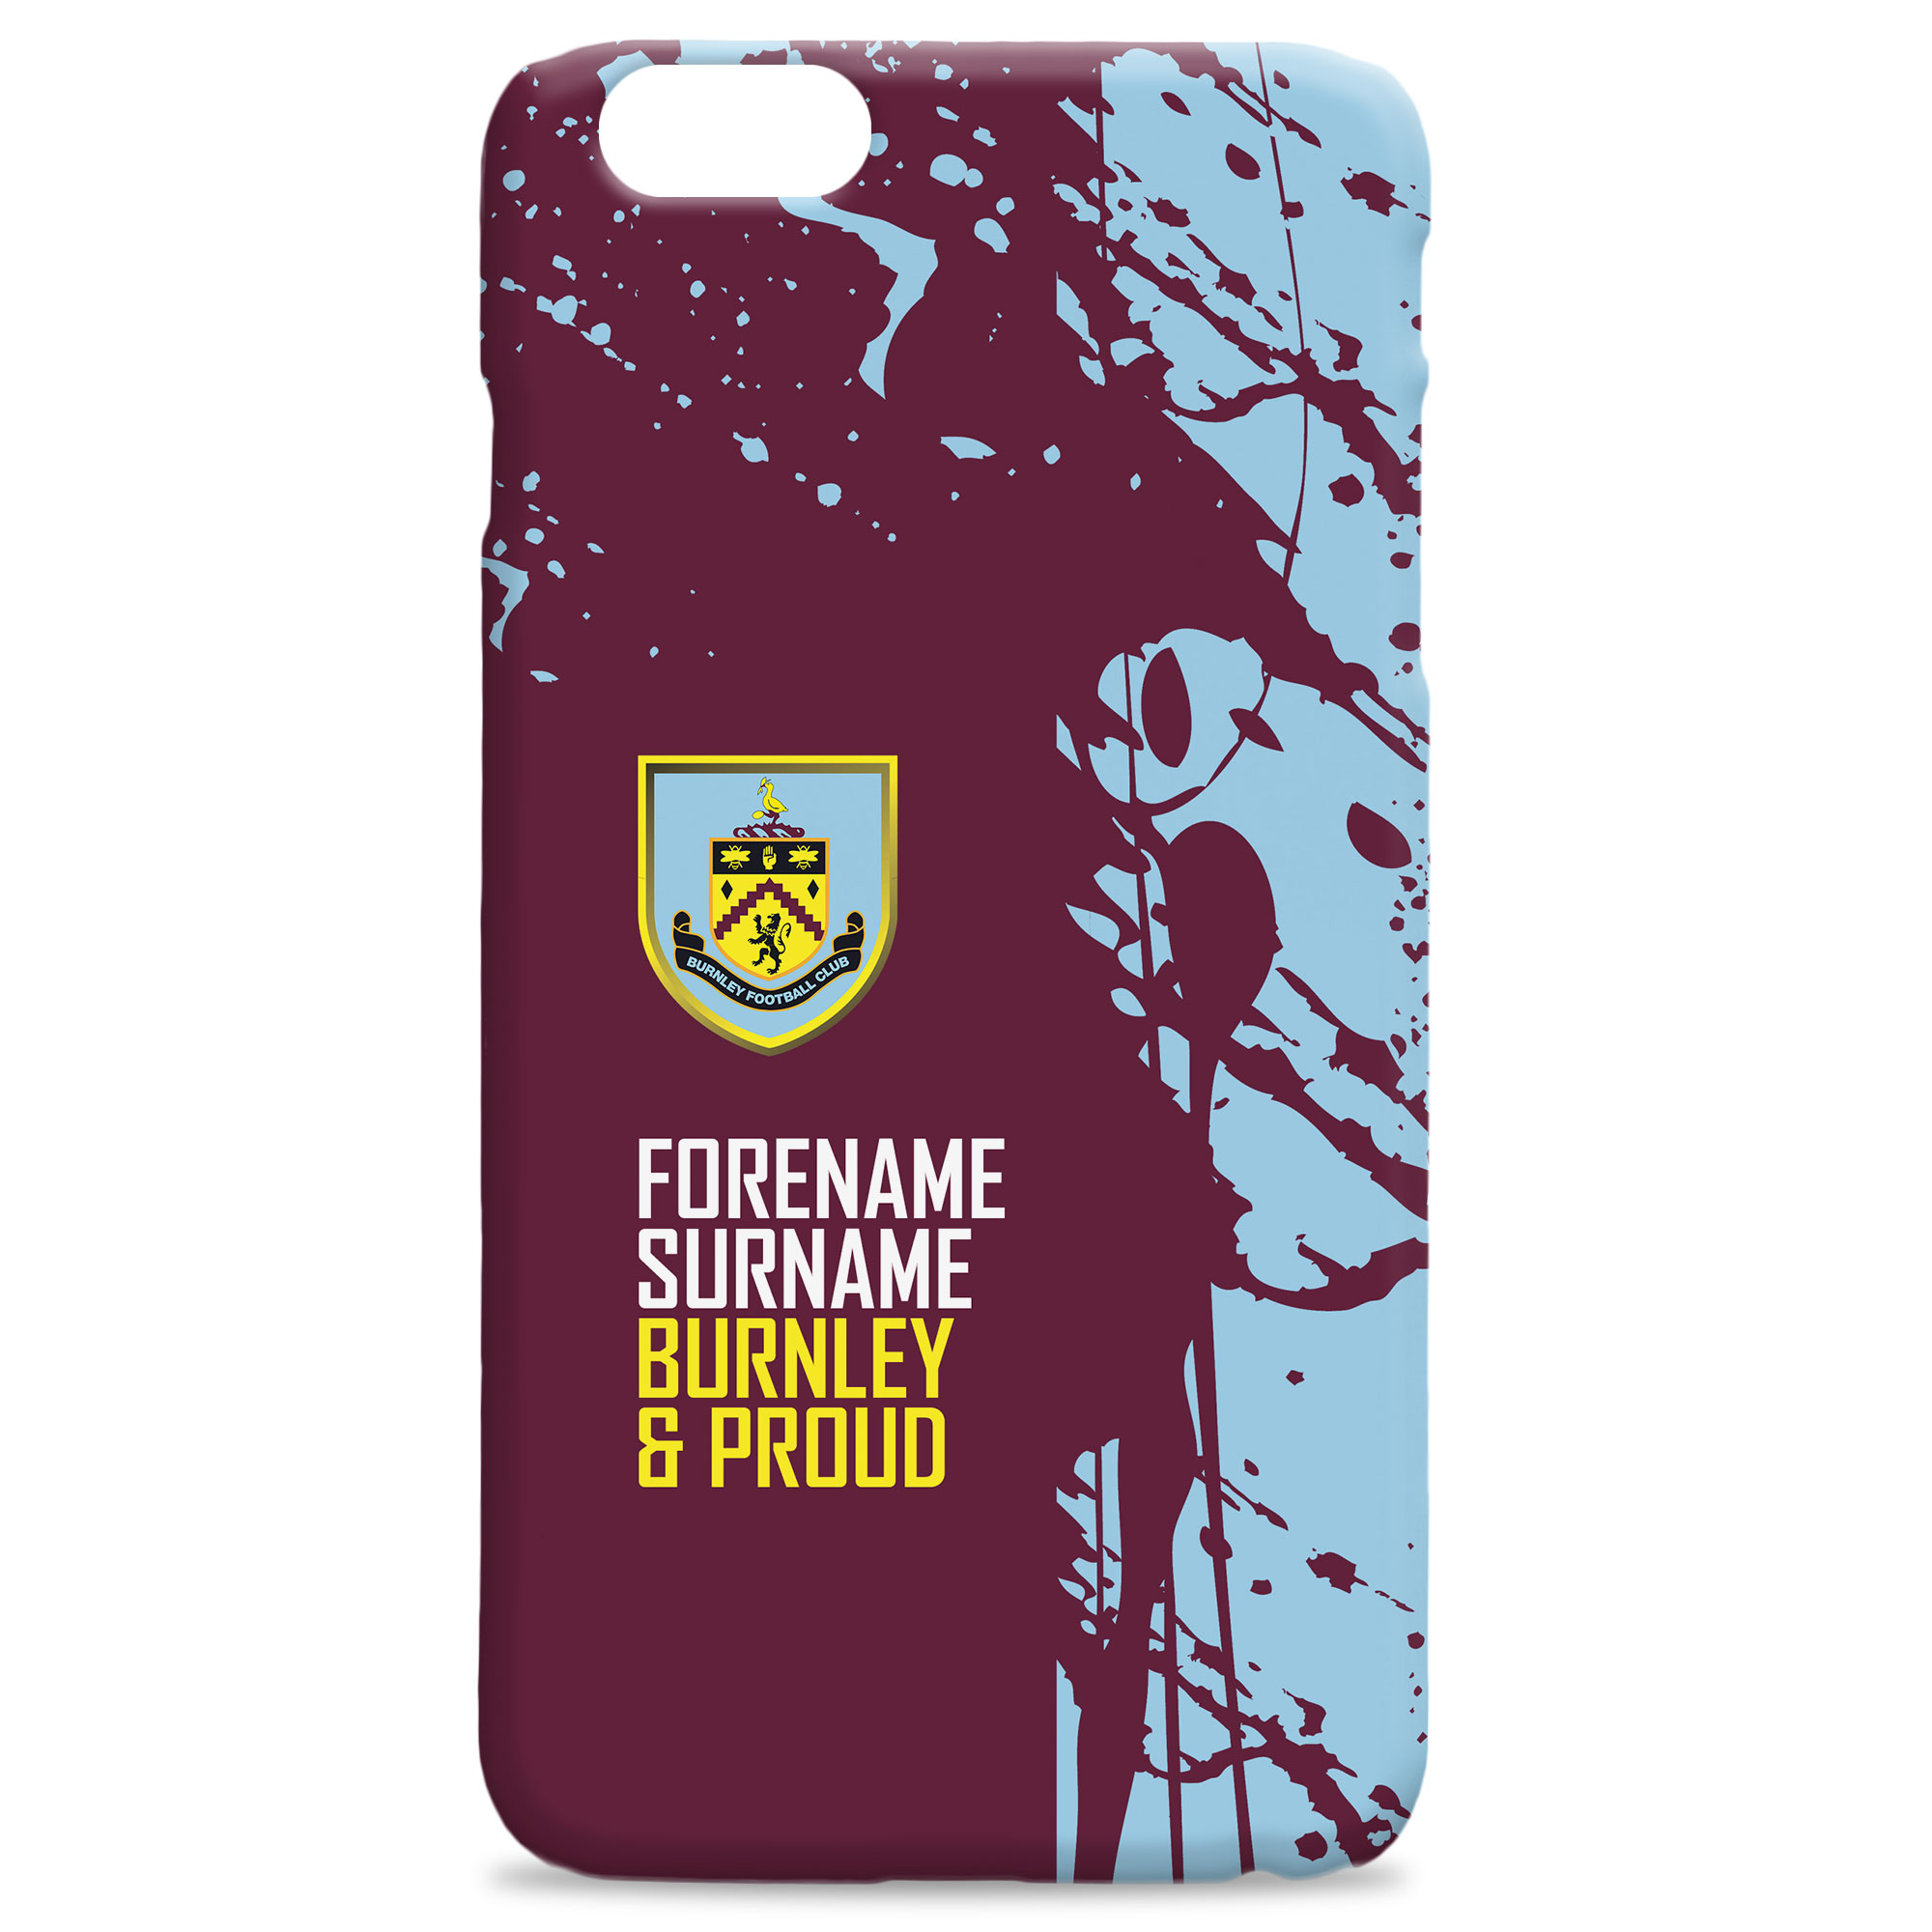 Burnley FC Proud Hard Back Phone Case